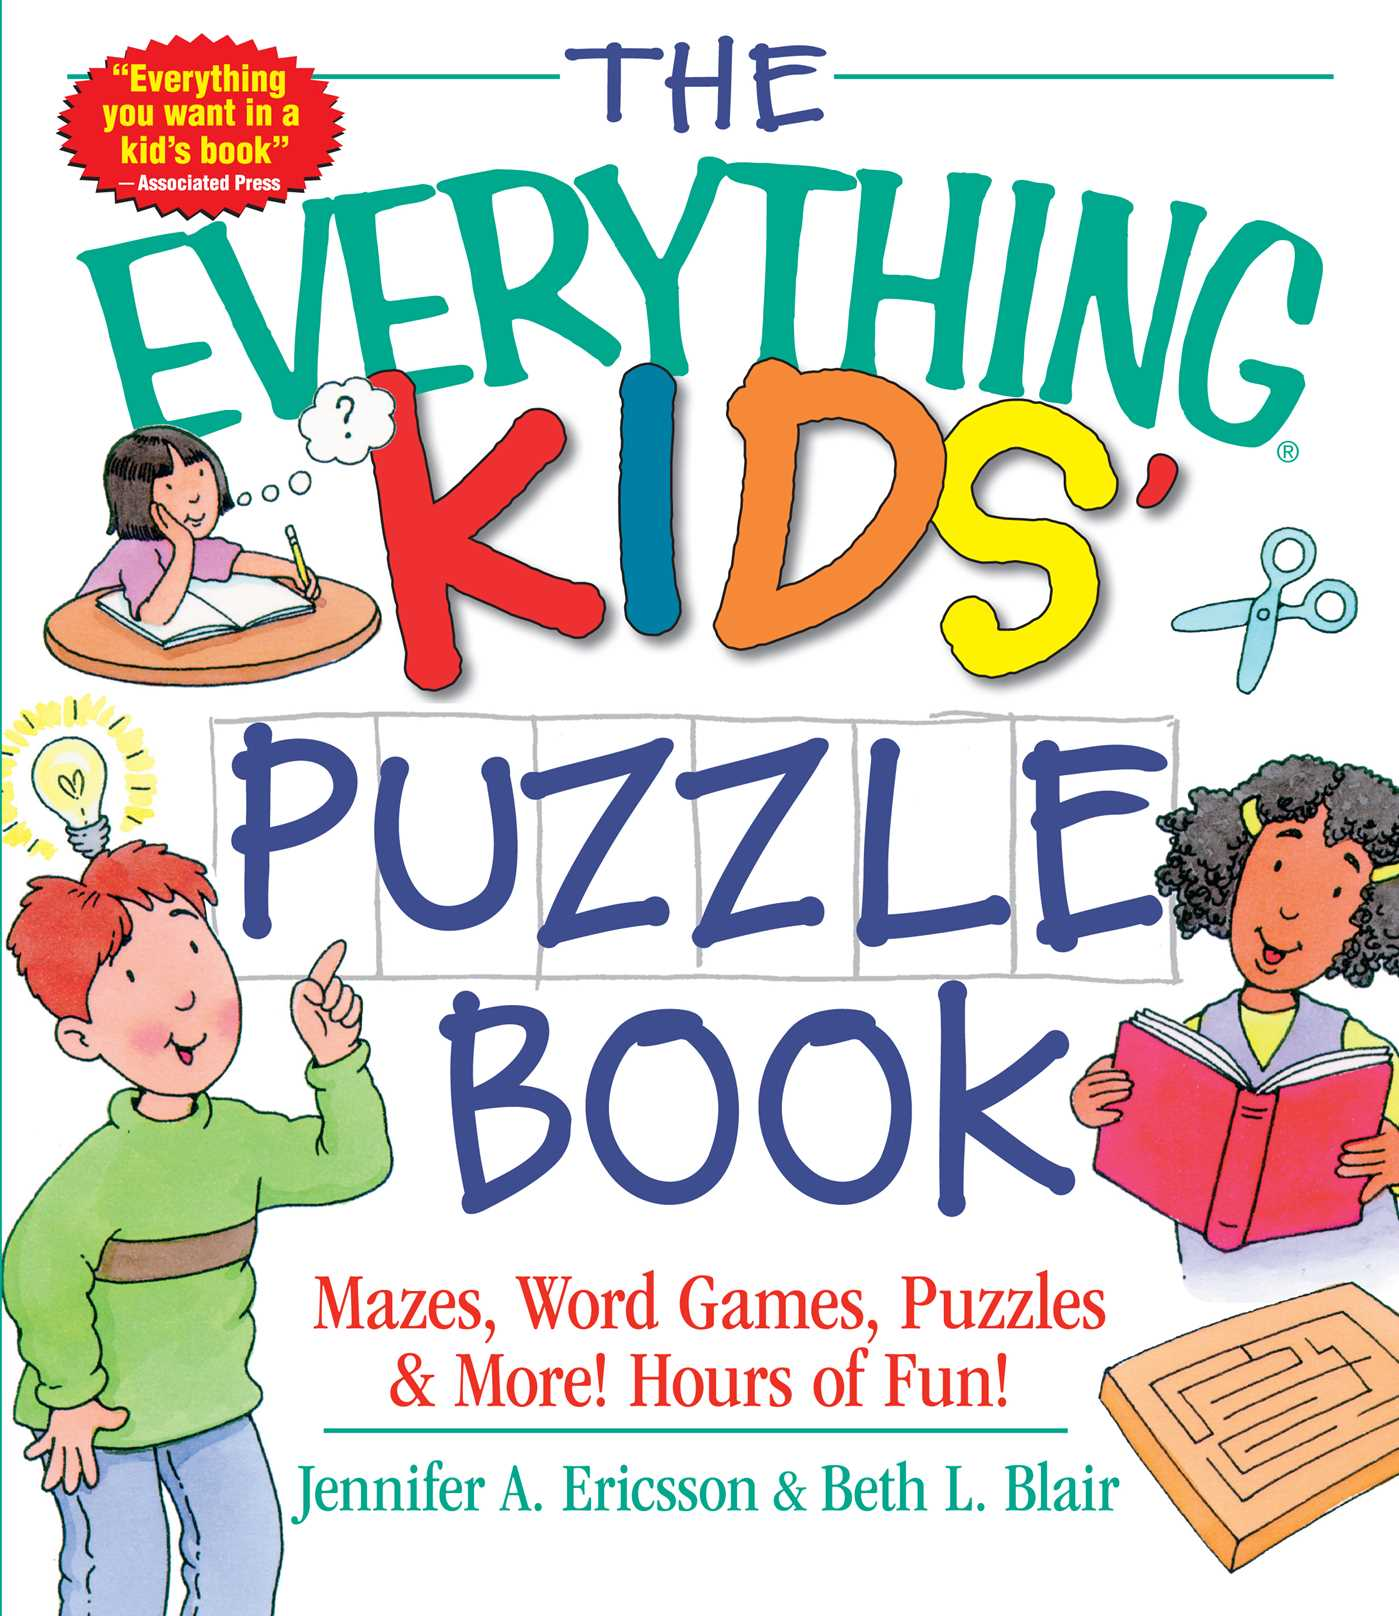 Puzzles for children: a selection of sites